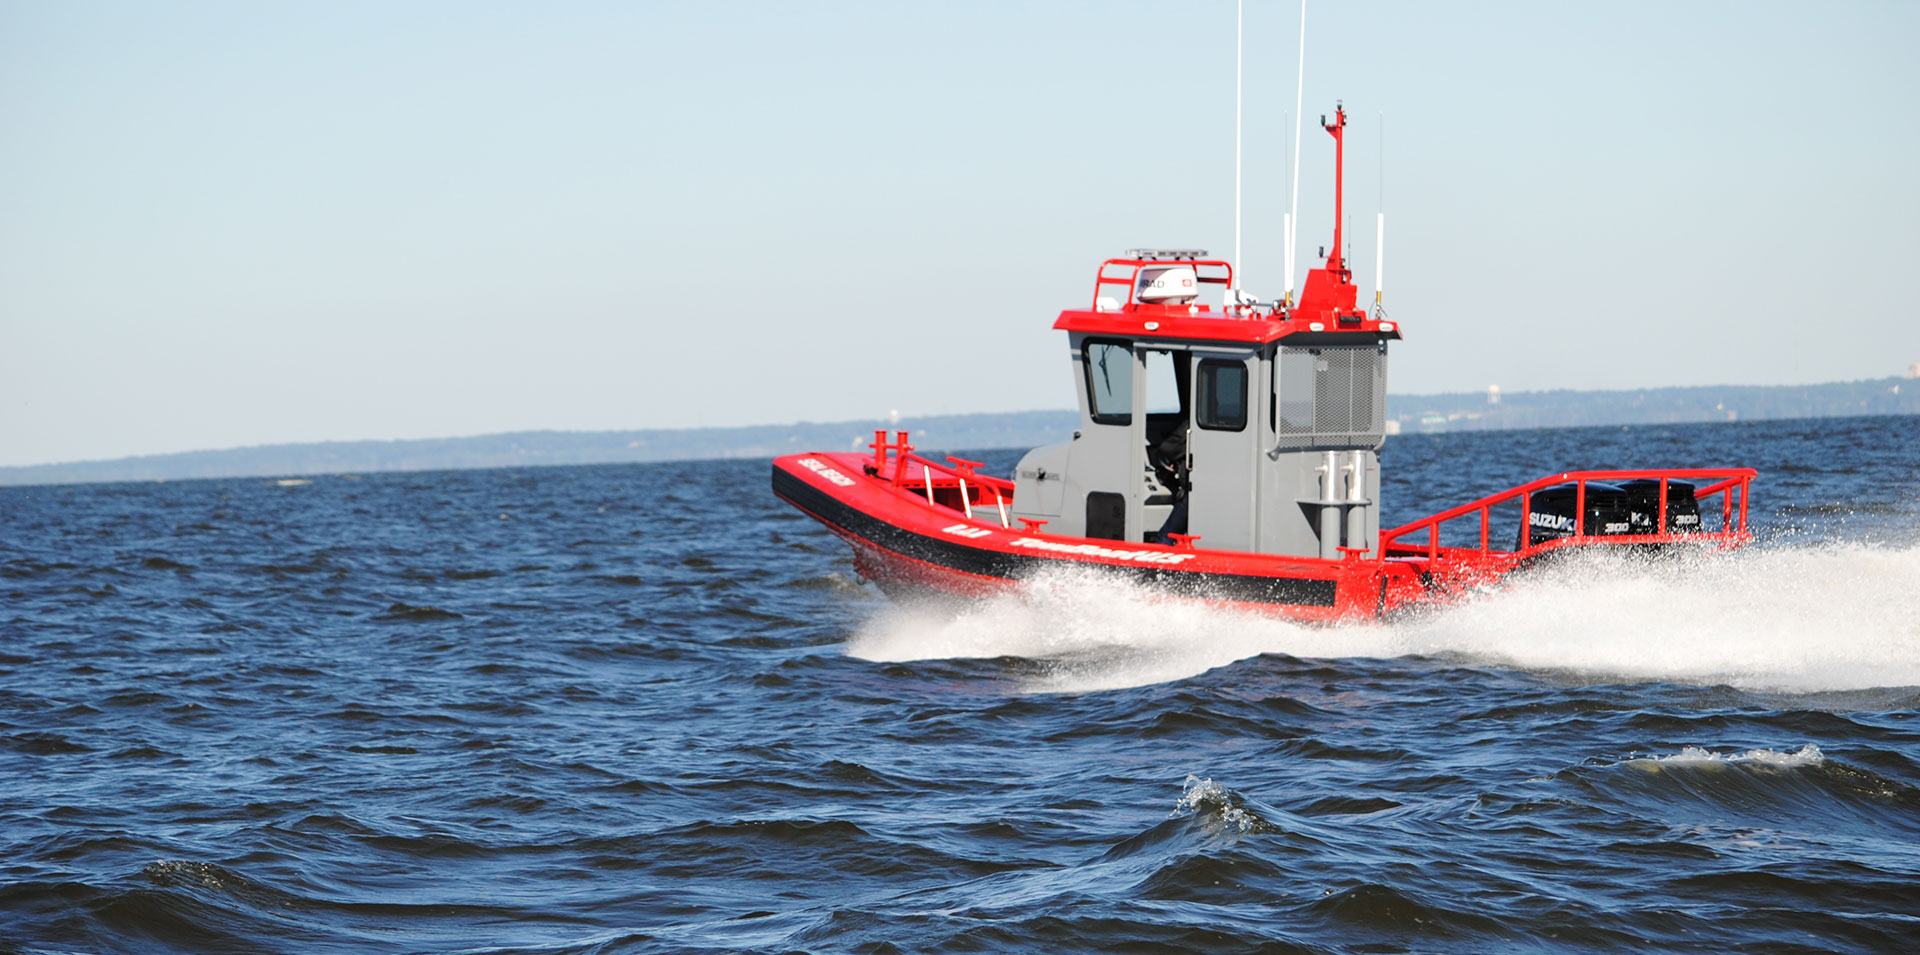 Red and gray Tow Boat U.S. Ambar boat on open ocean